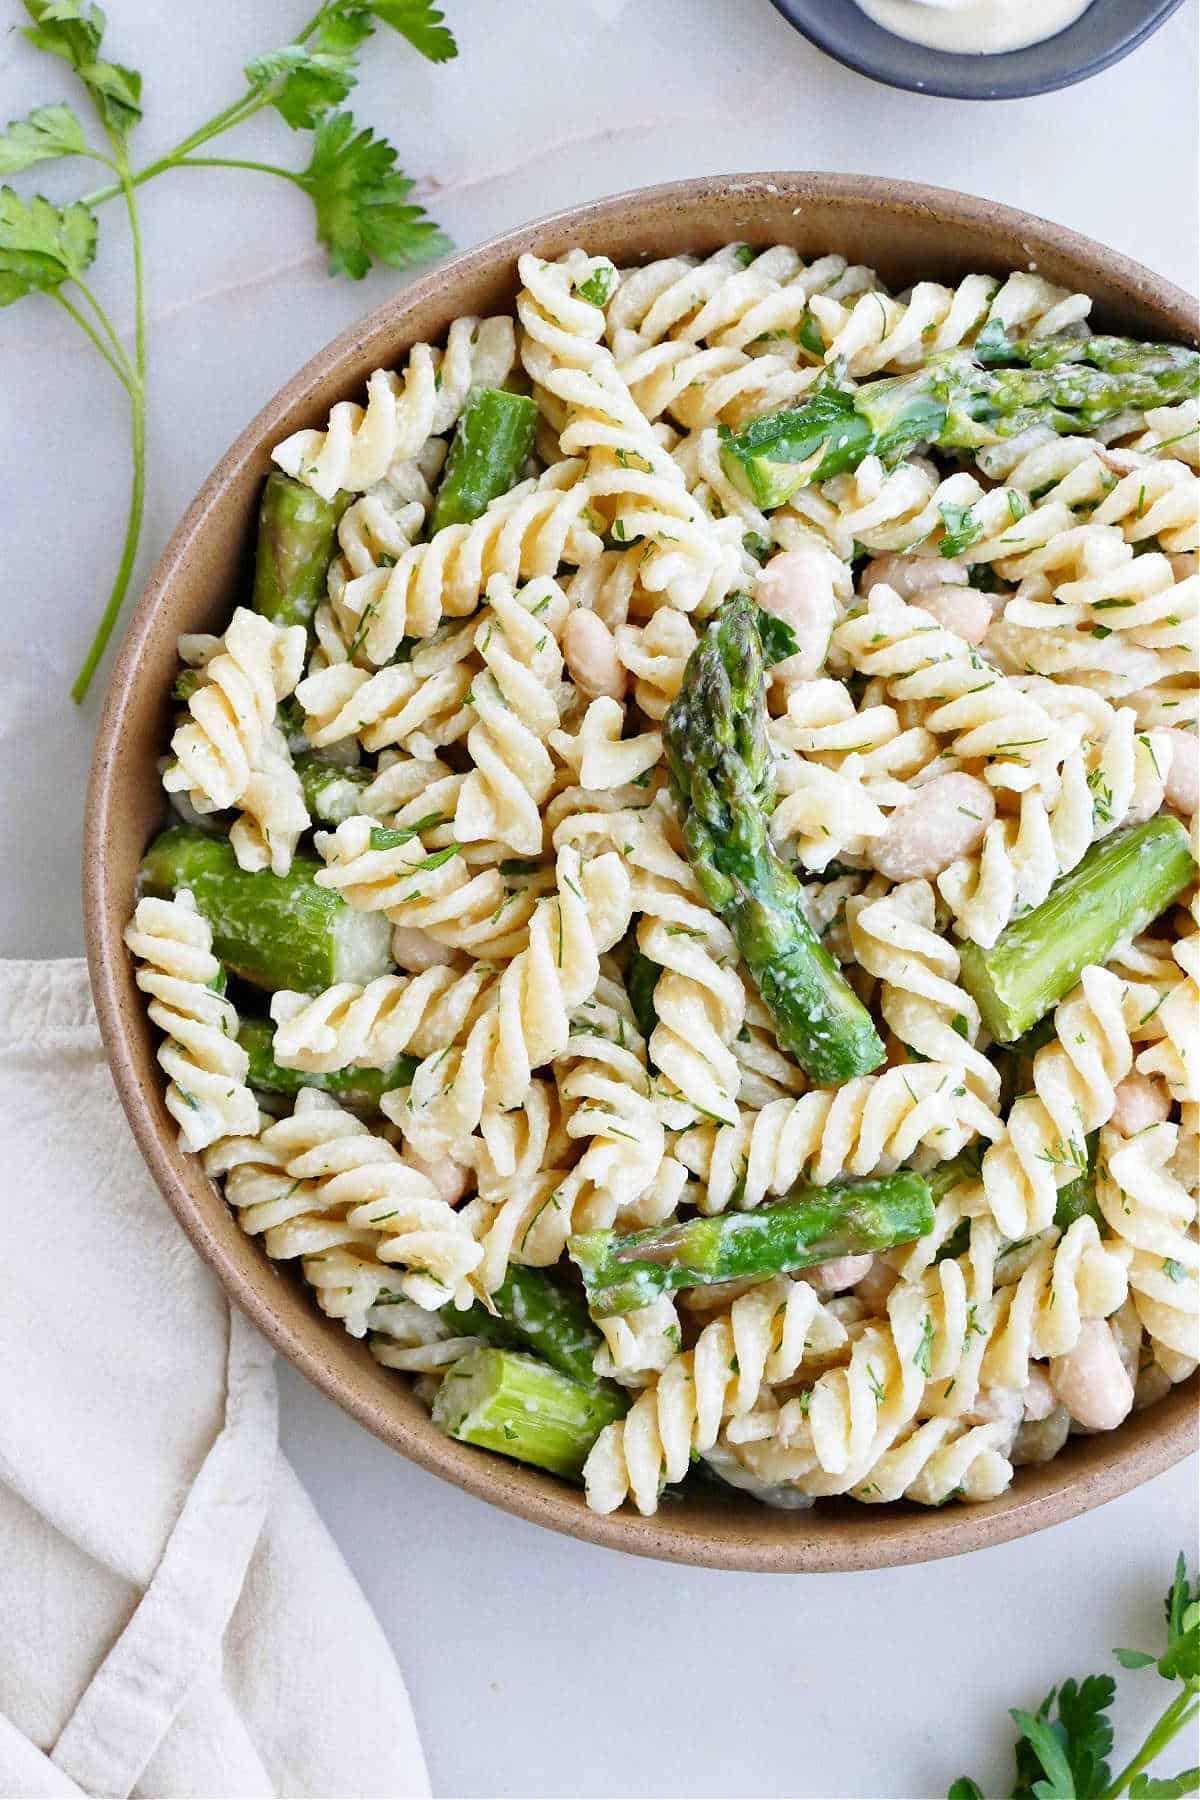 close-up image of pasta salad with asparagus and fresh herbs in a serving bowl